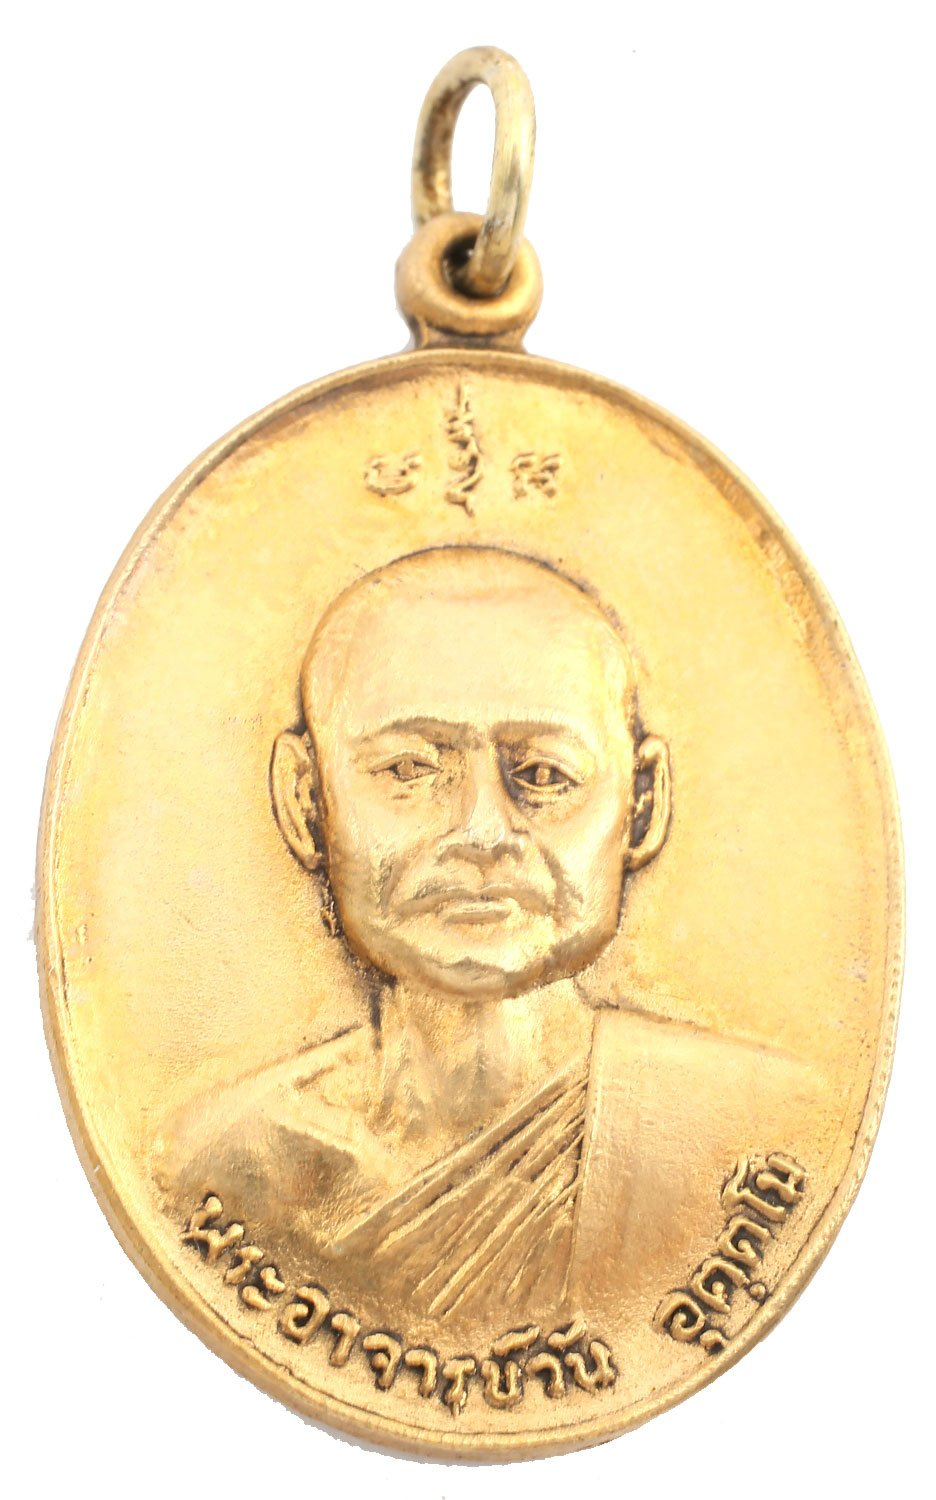 SIAMESE BUDDHIST MONK MEDAL